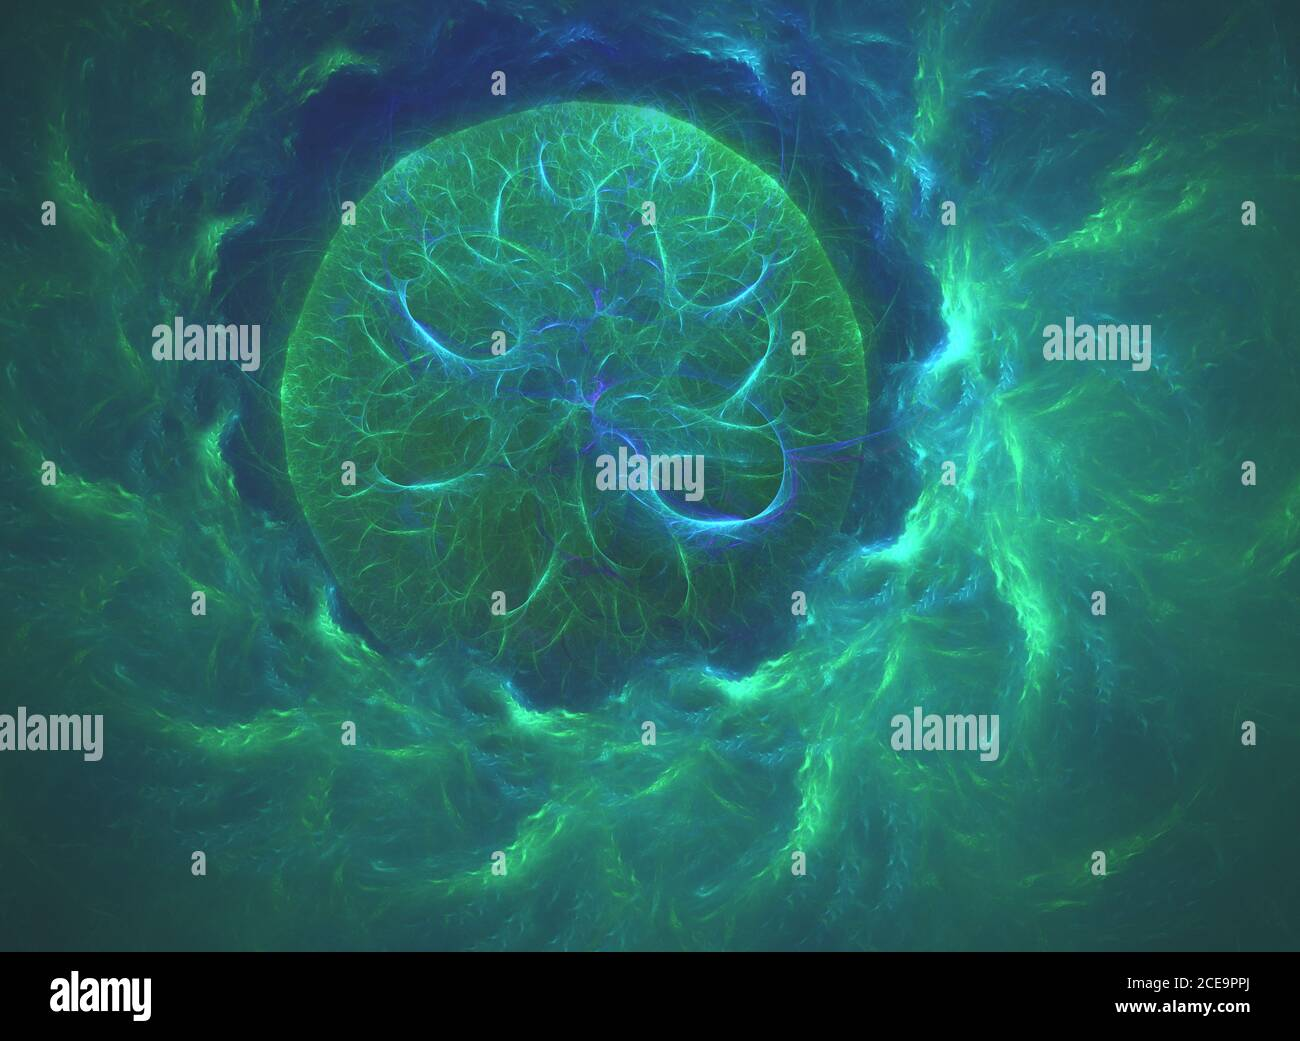 glowing green curved lines in shape of black hole over dark Abstract Background space universe. Illustration Stock Photo